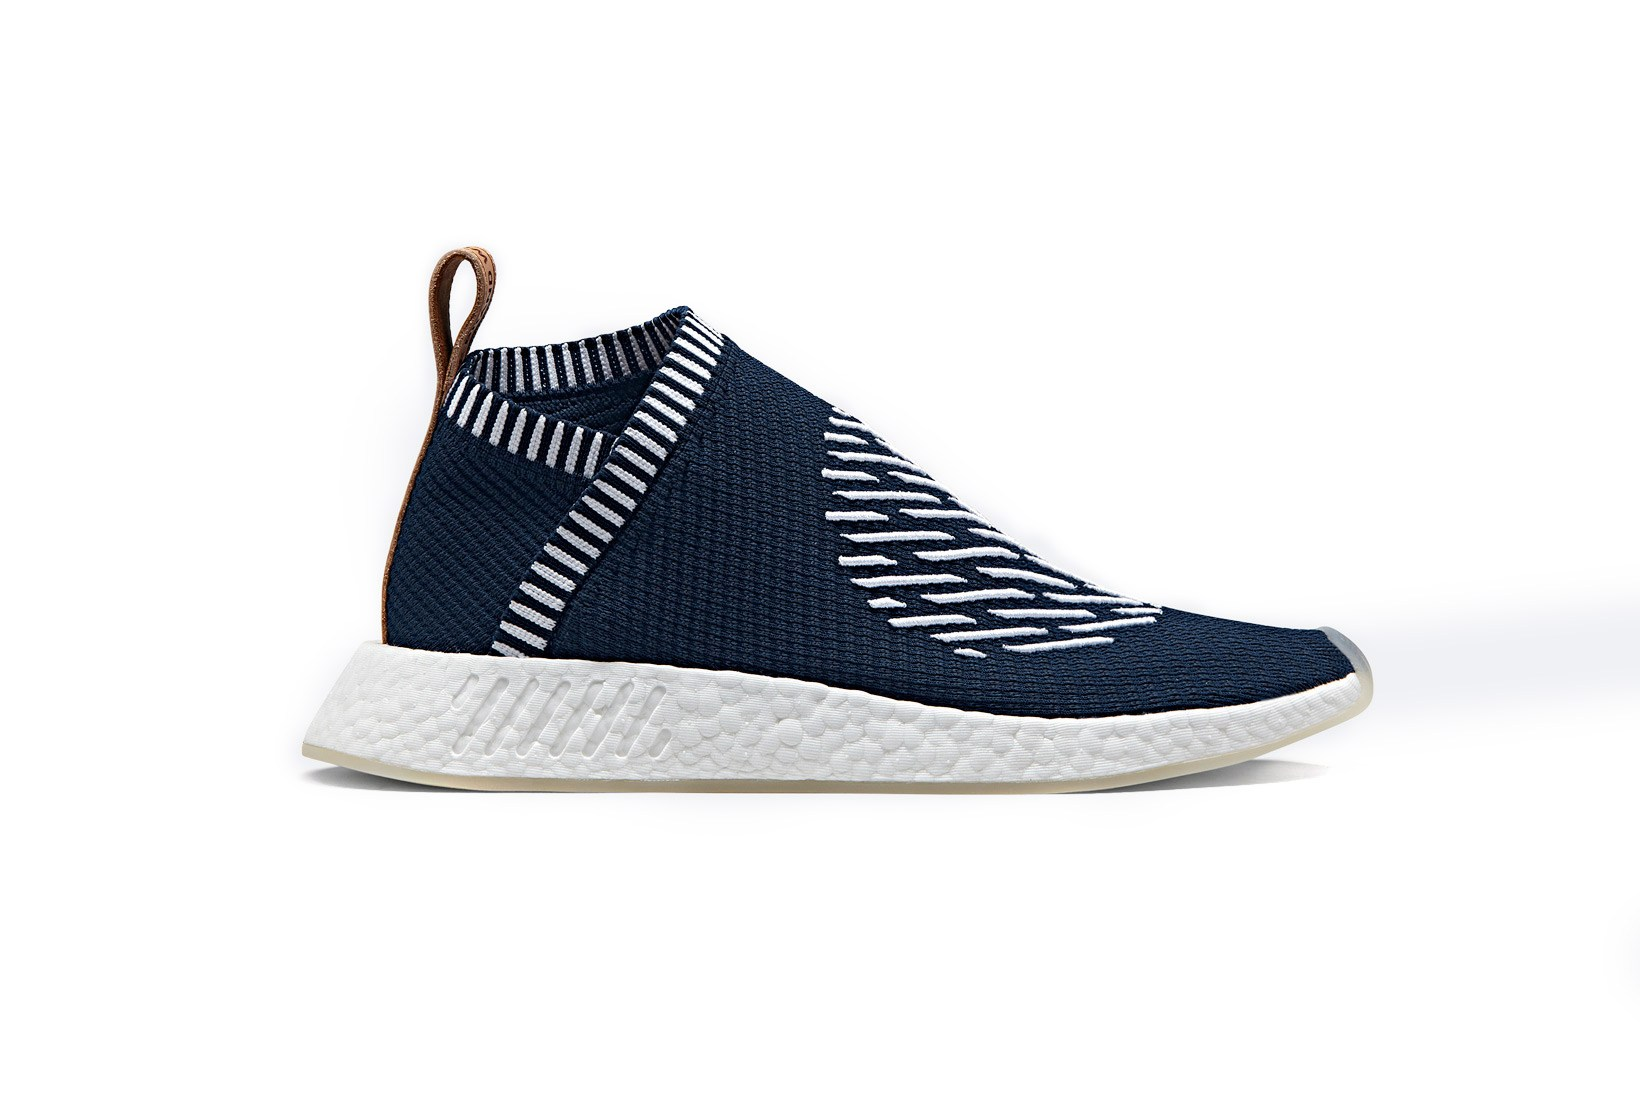 adidas-originals-nmd-cs2-ronin-pack-10